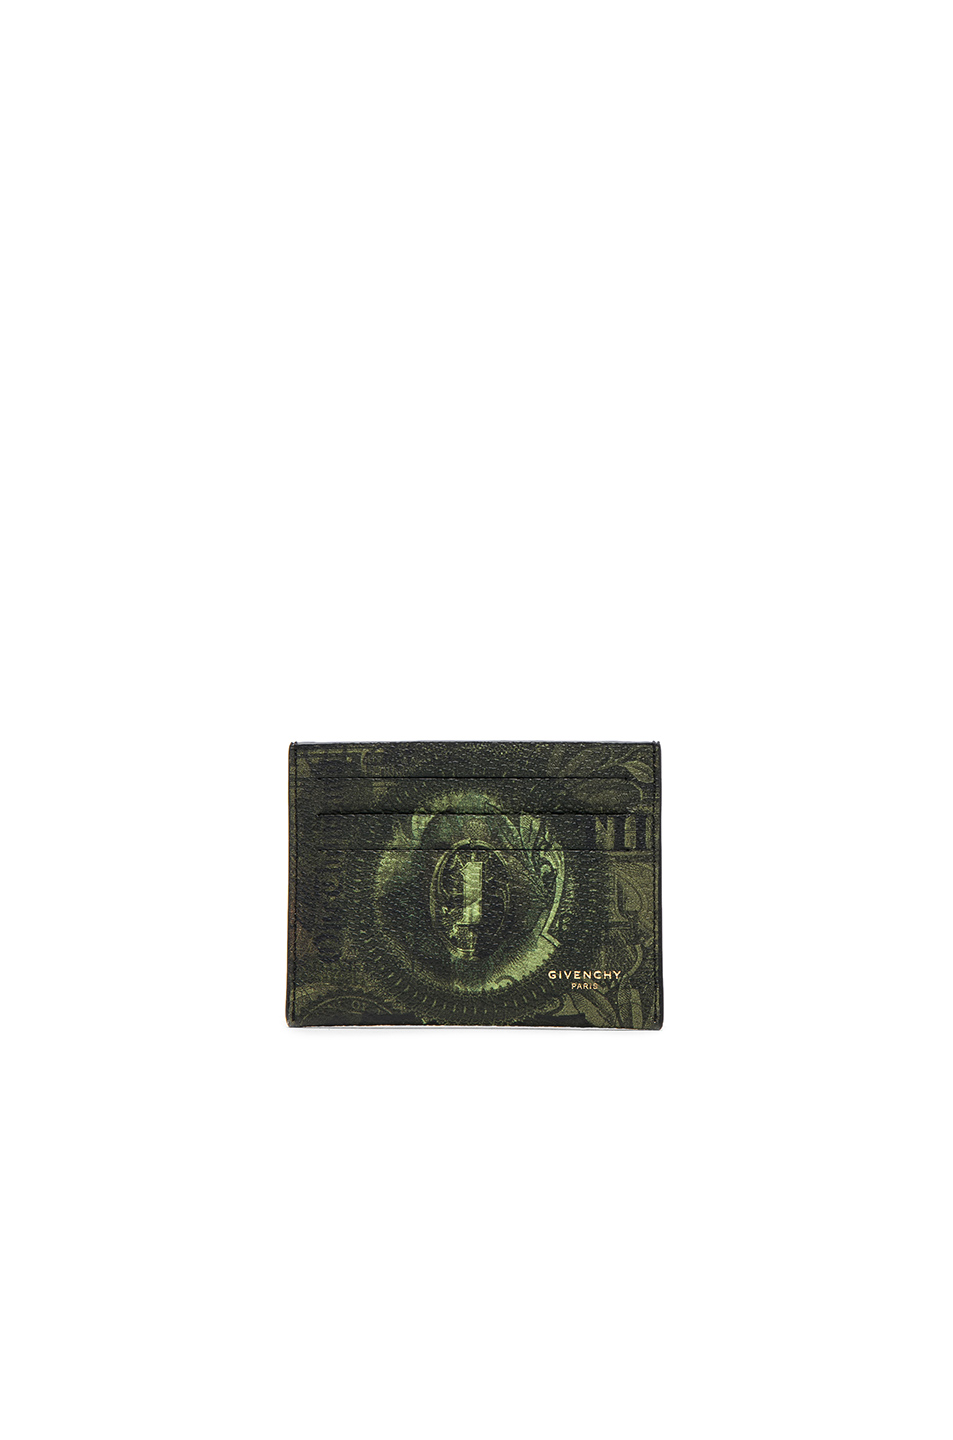 Givenchy Printed Cardholder in Green,Abstract